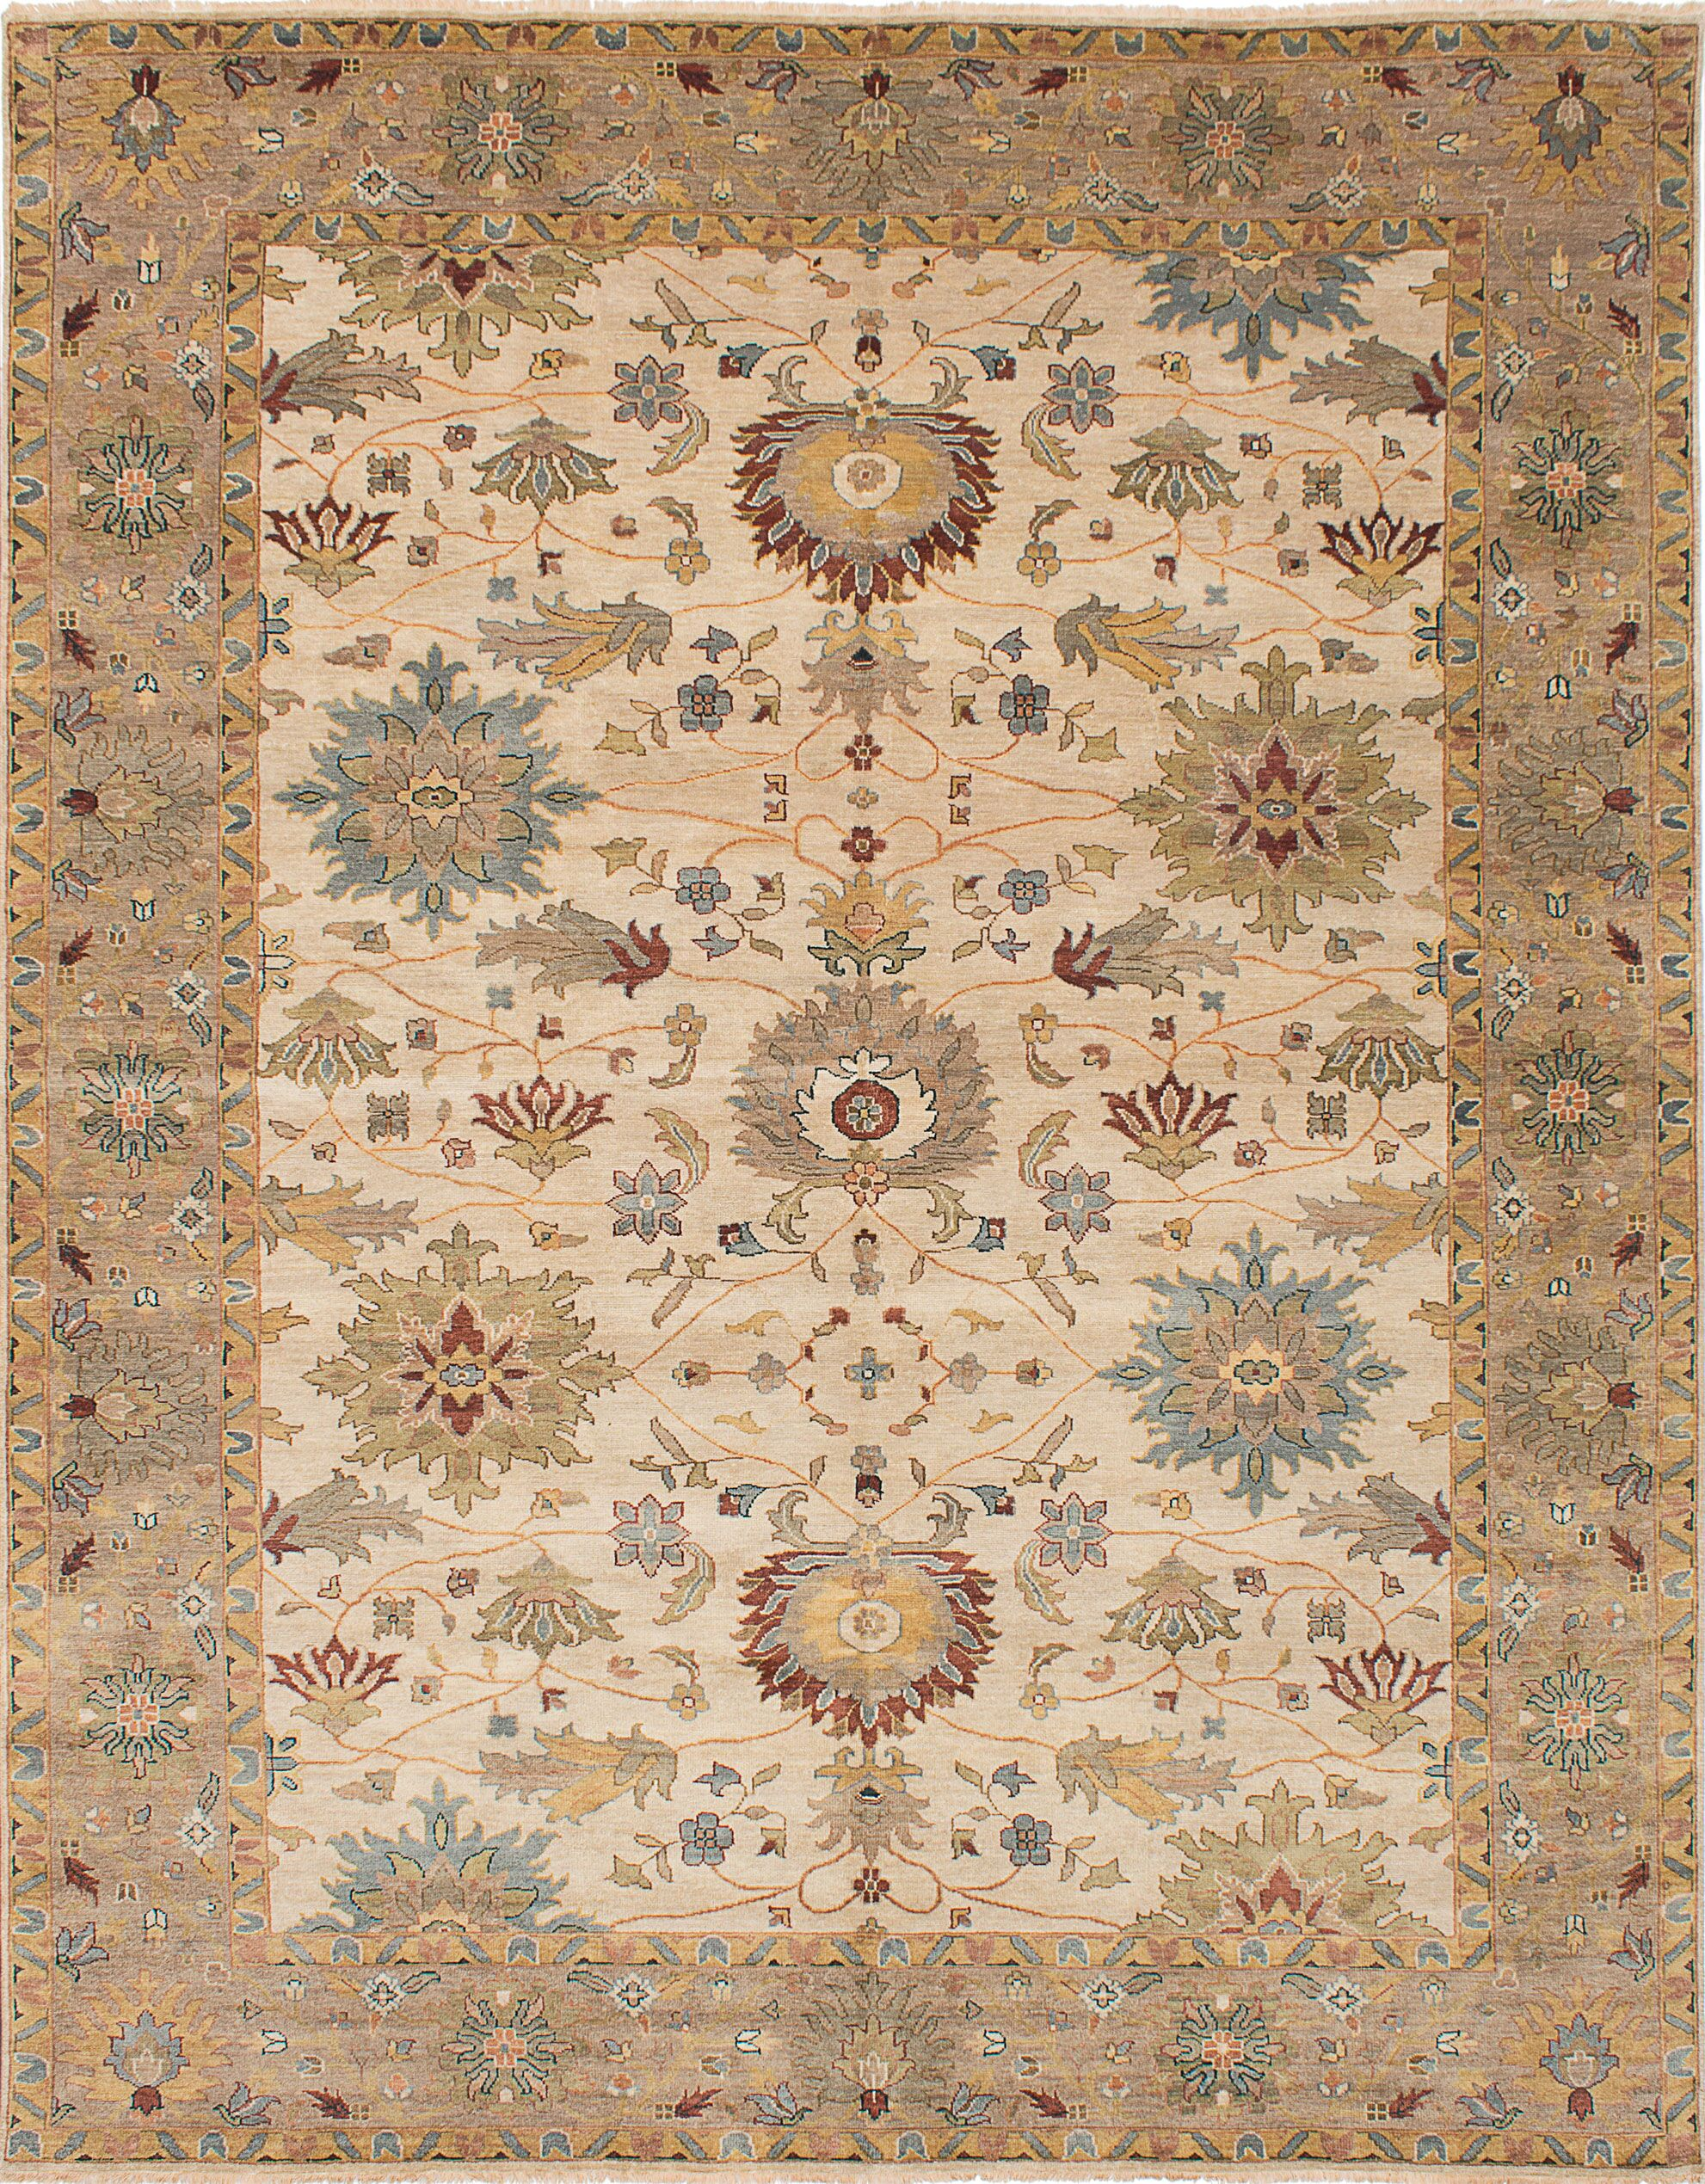 Bassford Hand-Woven Ivory Area Rug Rug Size: 9' x 11'8